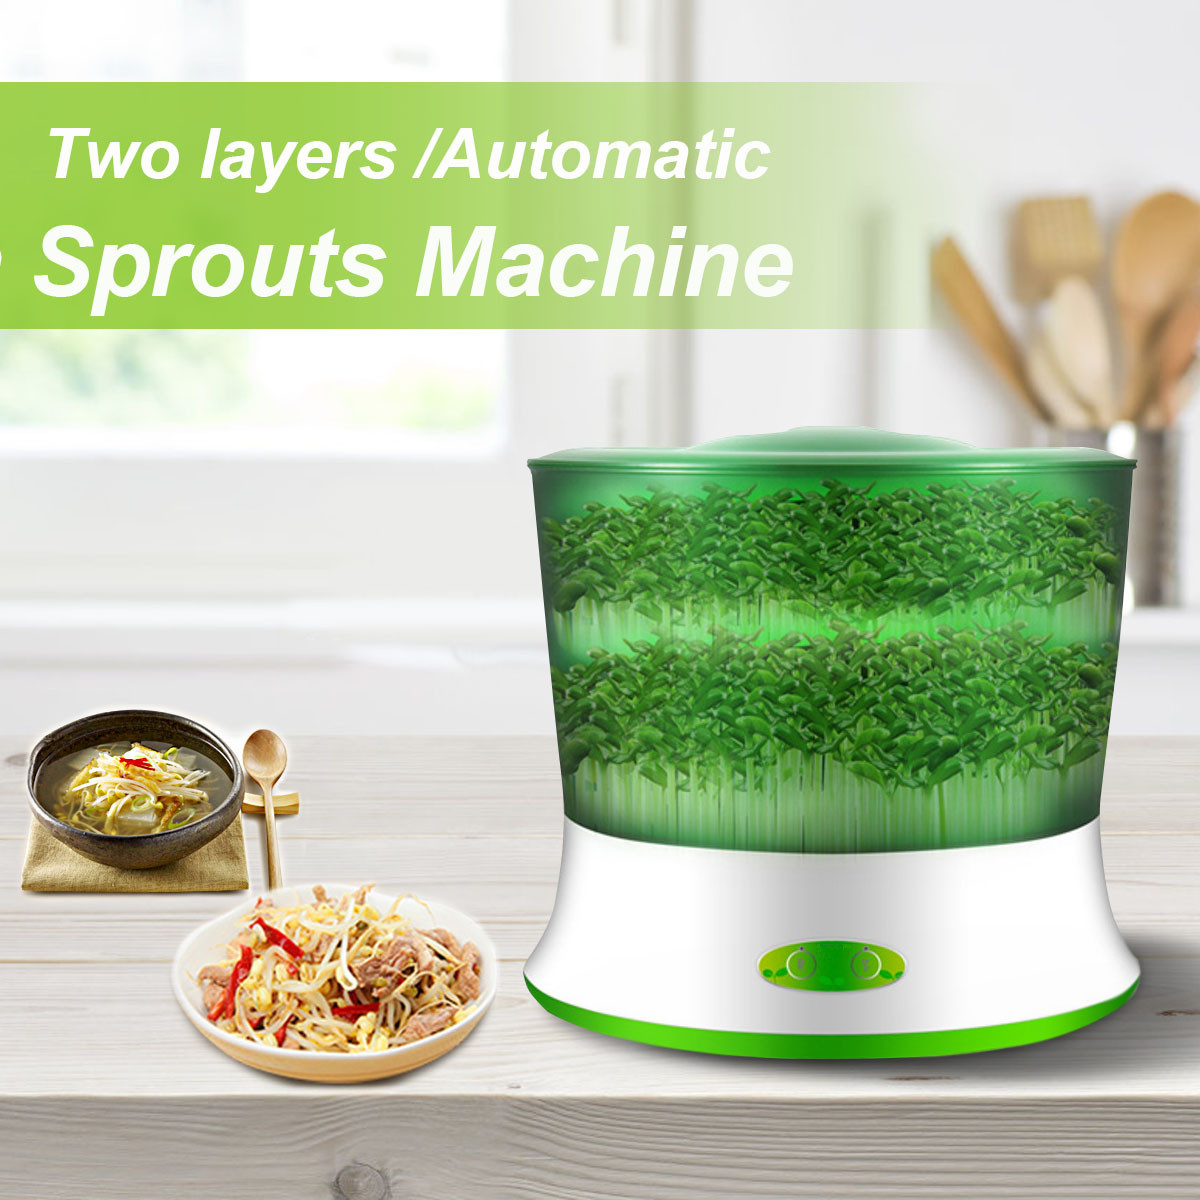 220V 20W Automatic Bean Sprout Machine 2 Layer Multifunctional Homemade Sprout Bud Machine Intelligent Microcomputer Control yoga sprout комплект